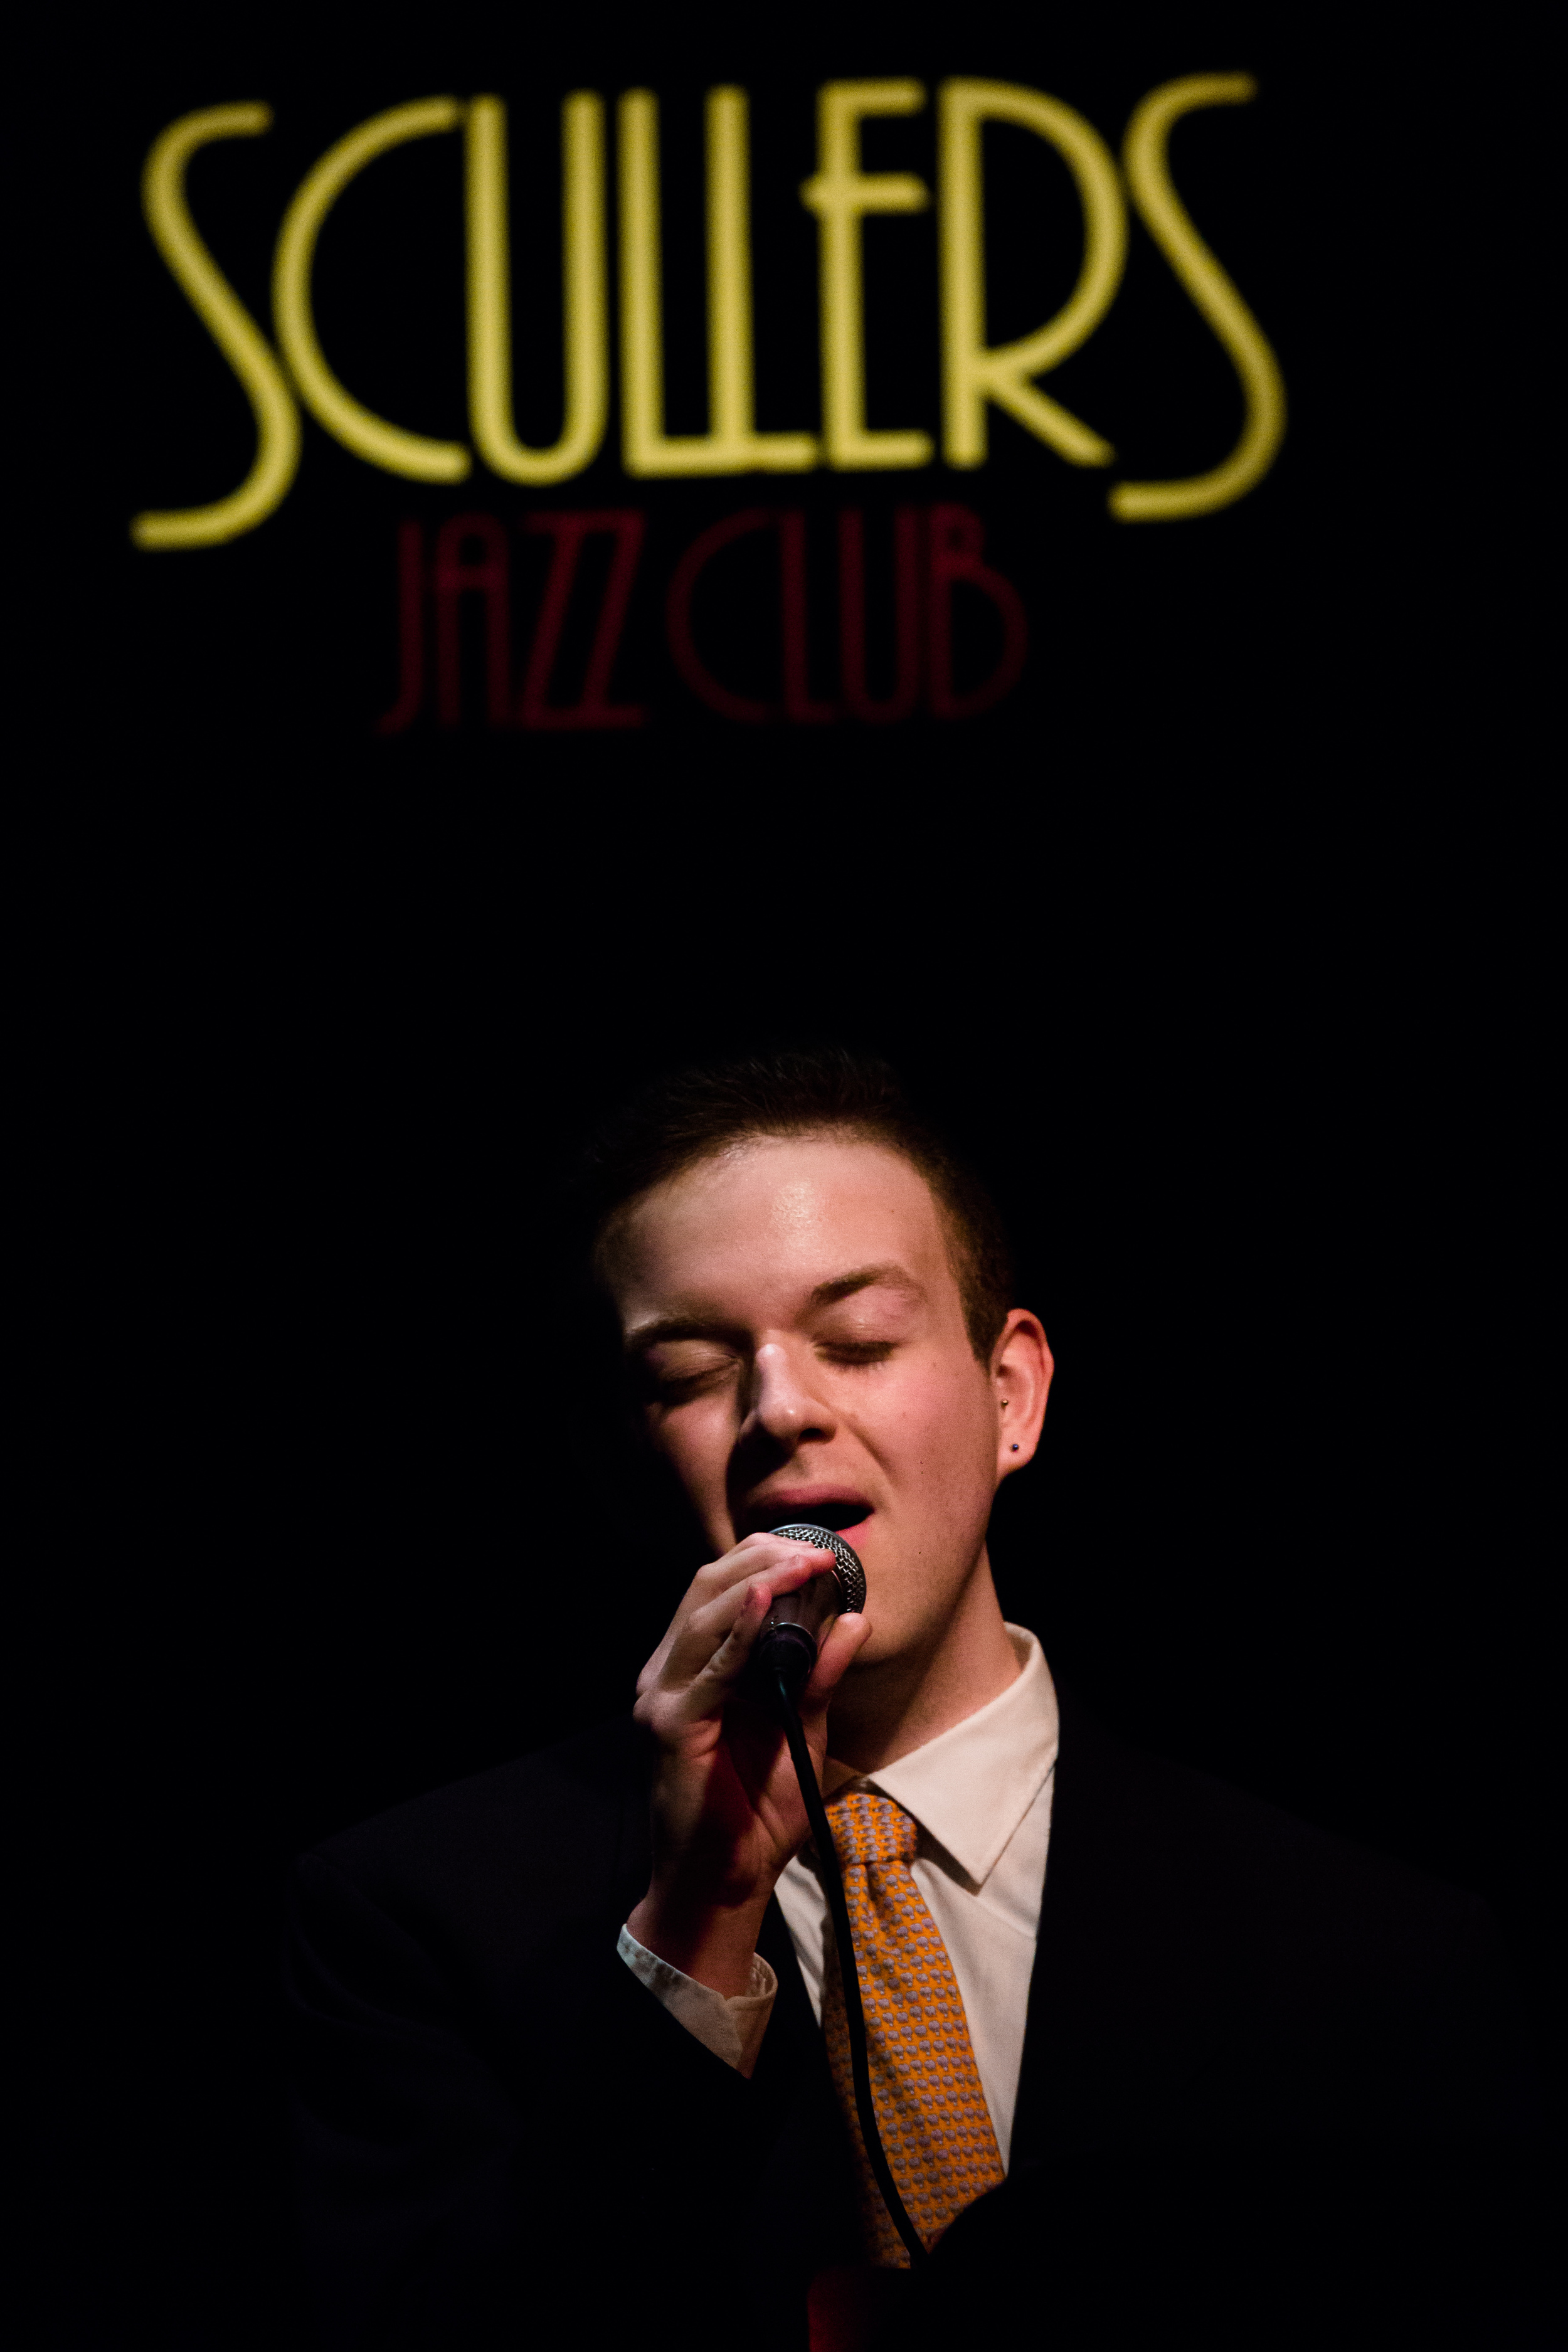 Young jazz artist performs at Scullers, in Boston, Mass.